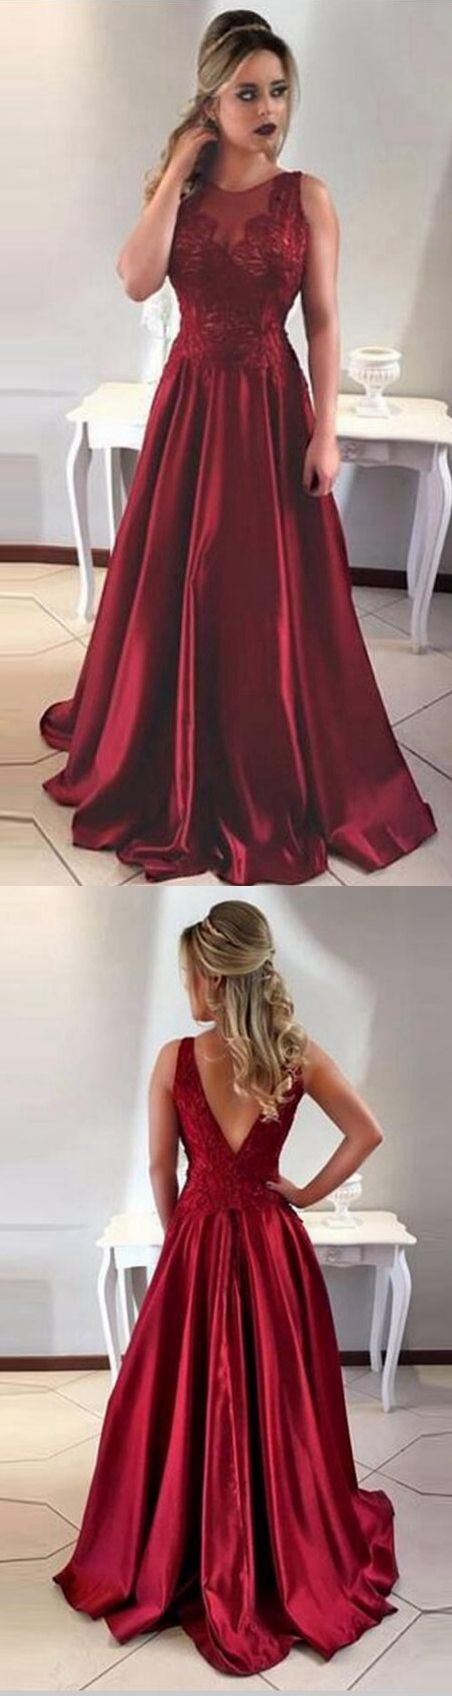 Prom Dress 2018,Prom Dresses,Evening Gown, Graduation Party Dresses, Prom Dresses For Teens on Storenvy